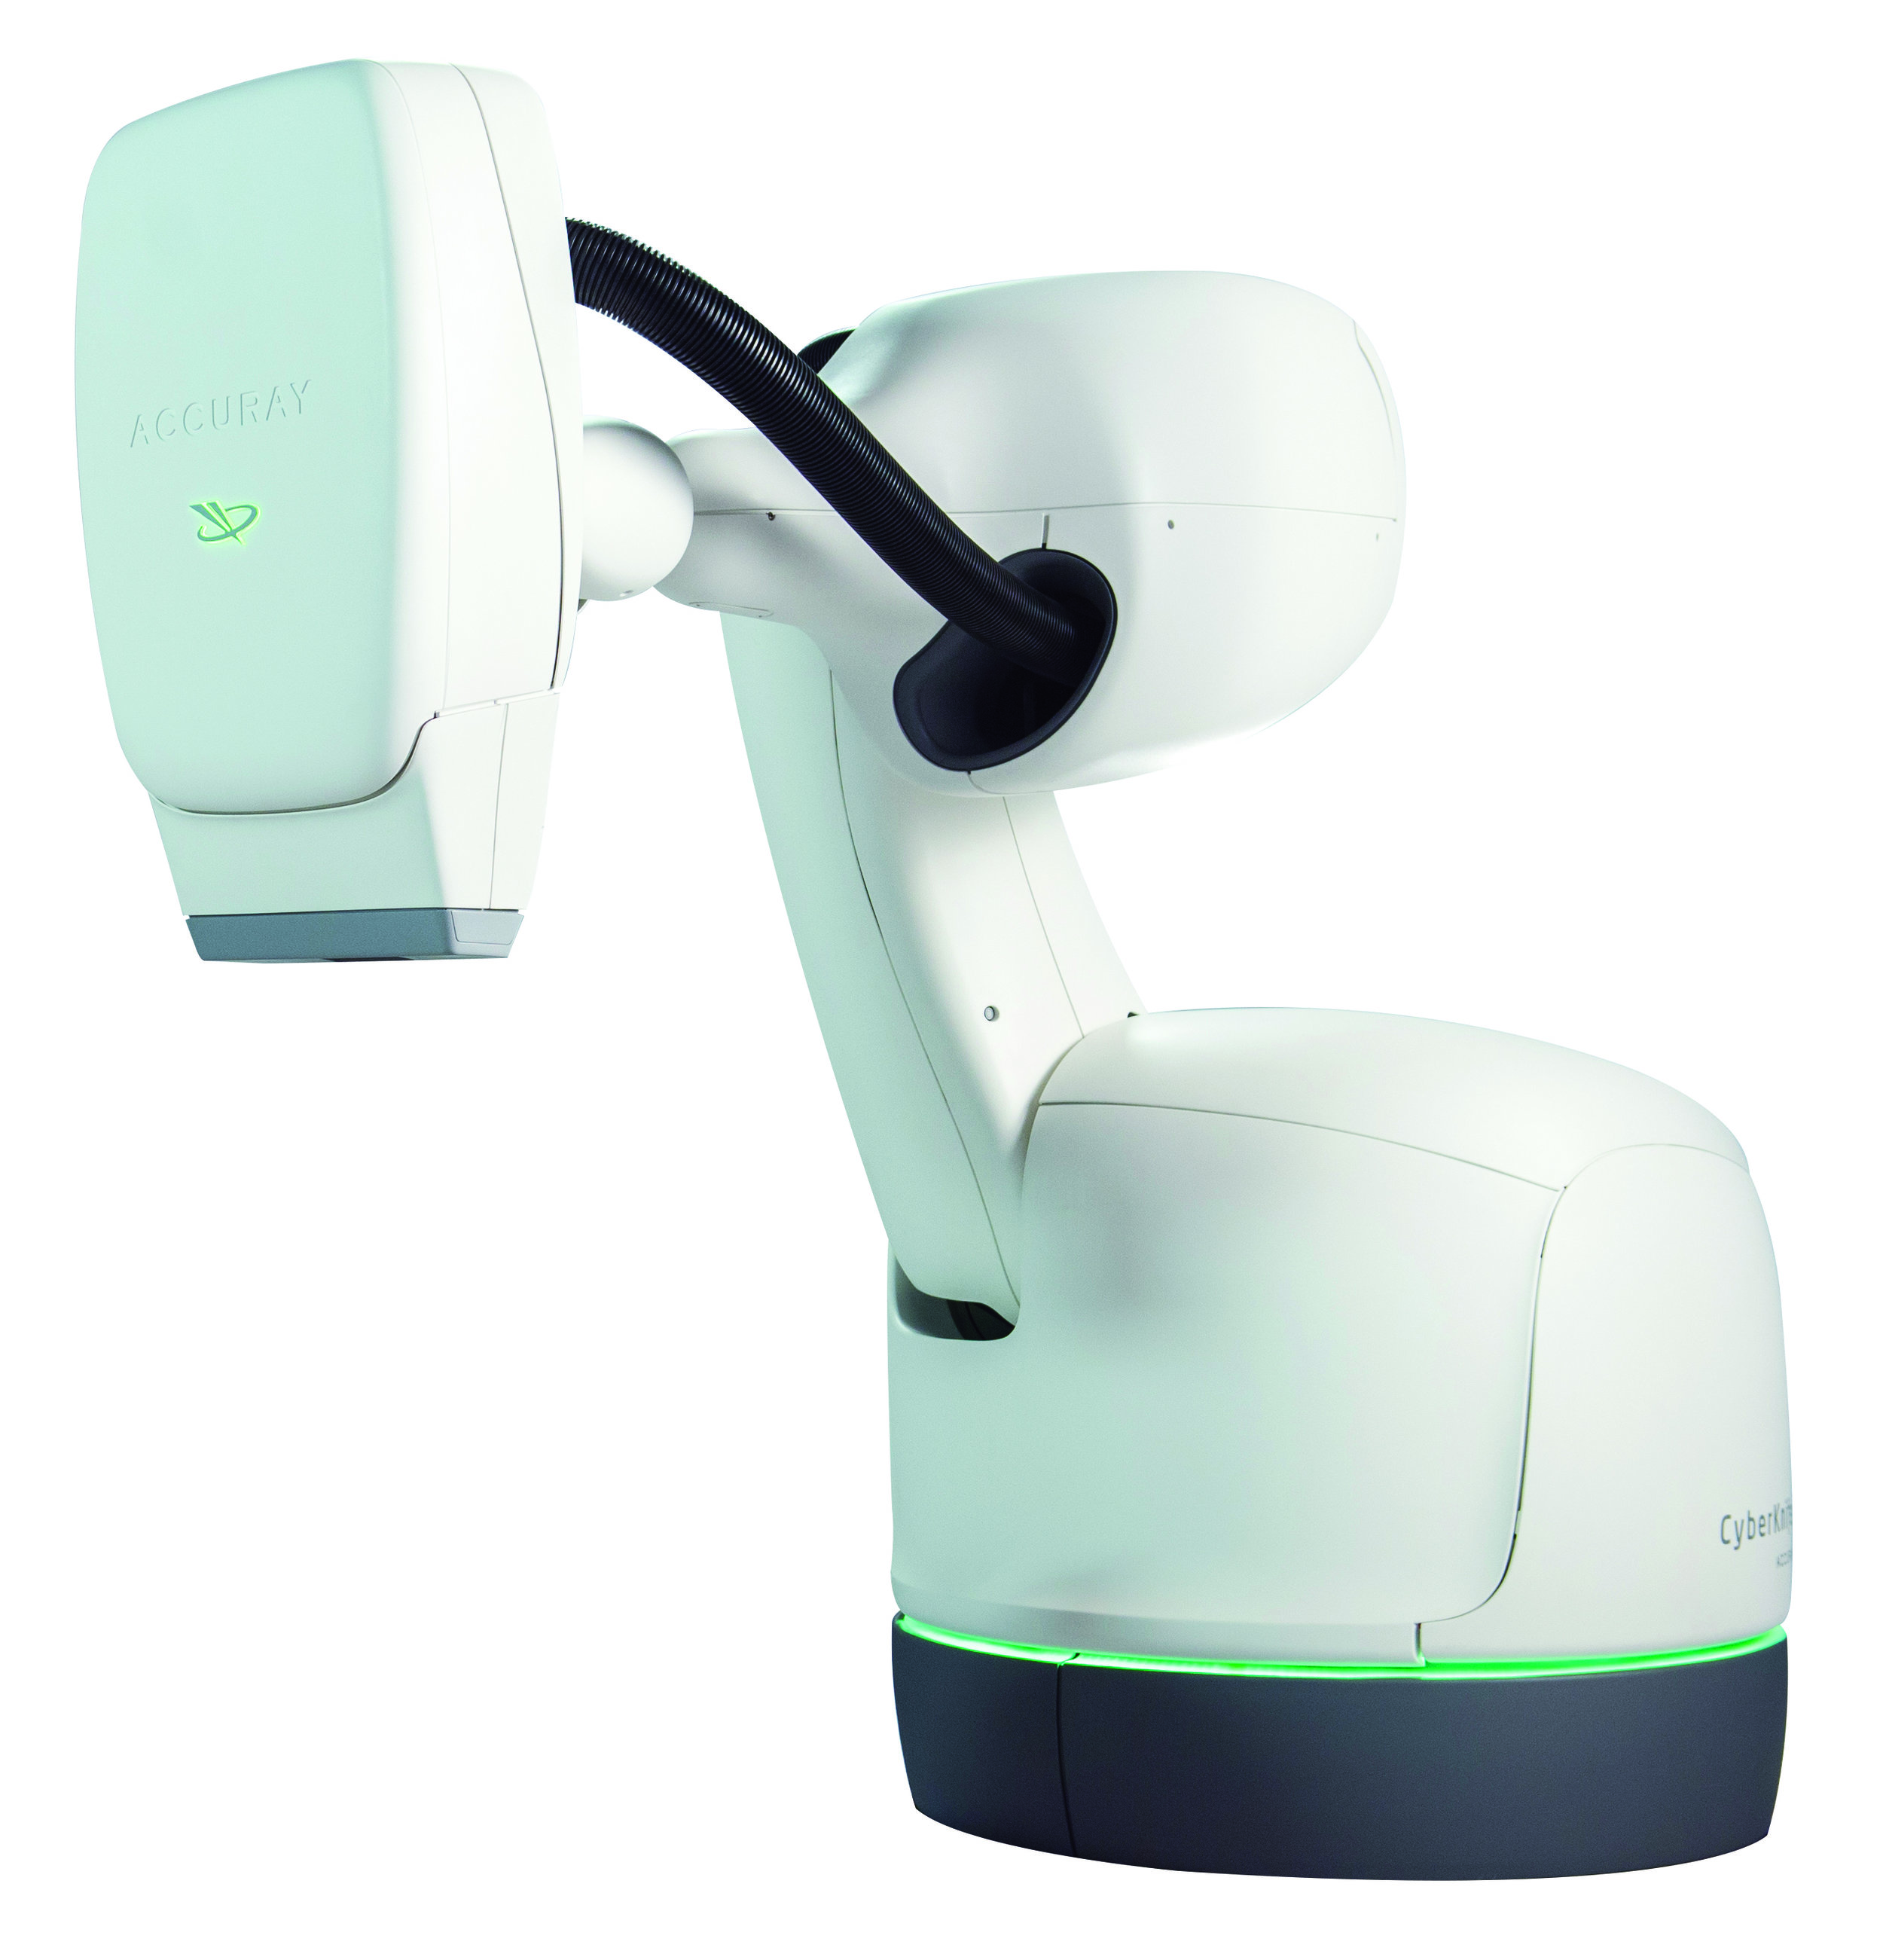 CyberKnife Treatment Delivery System